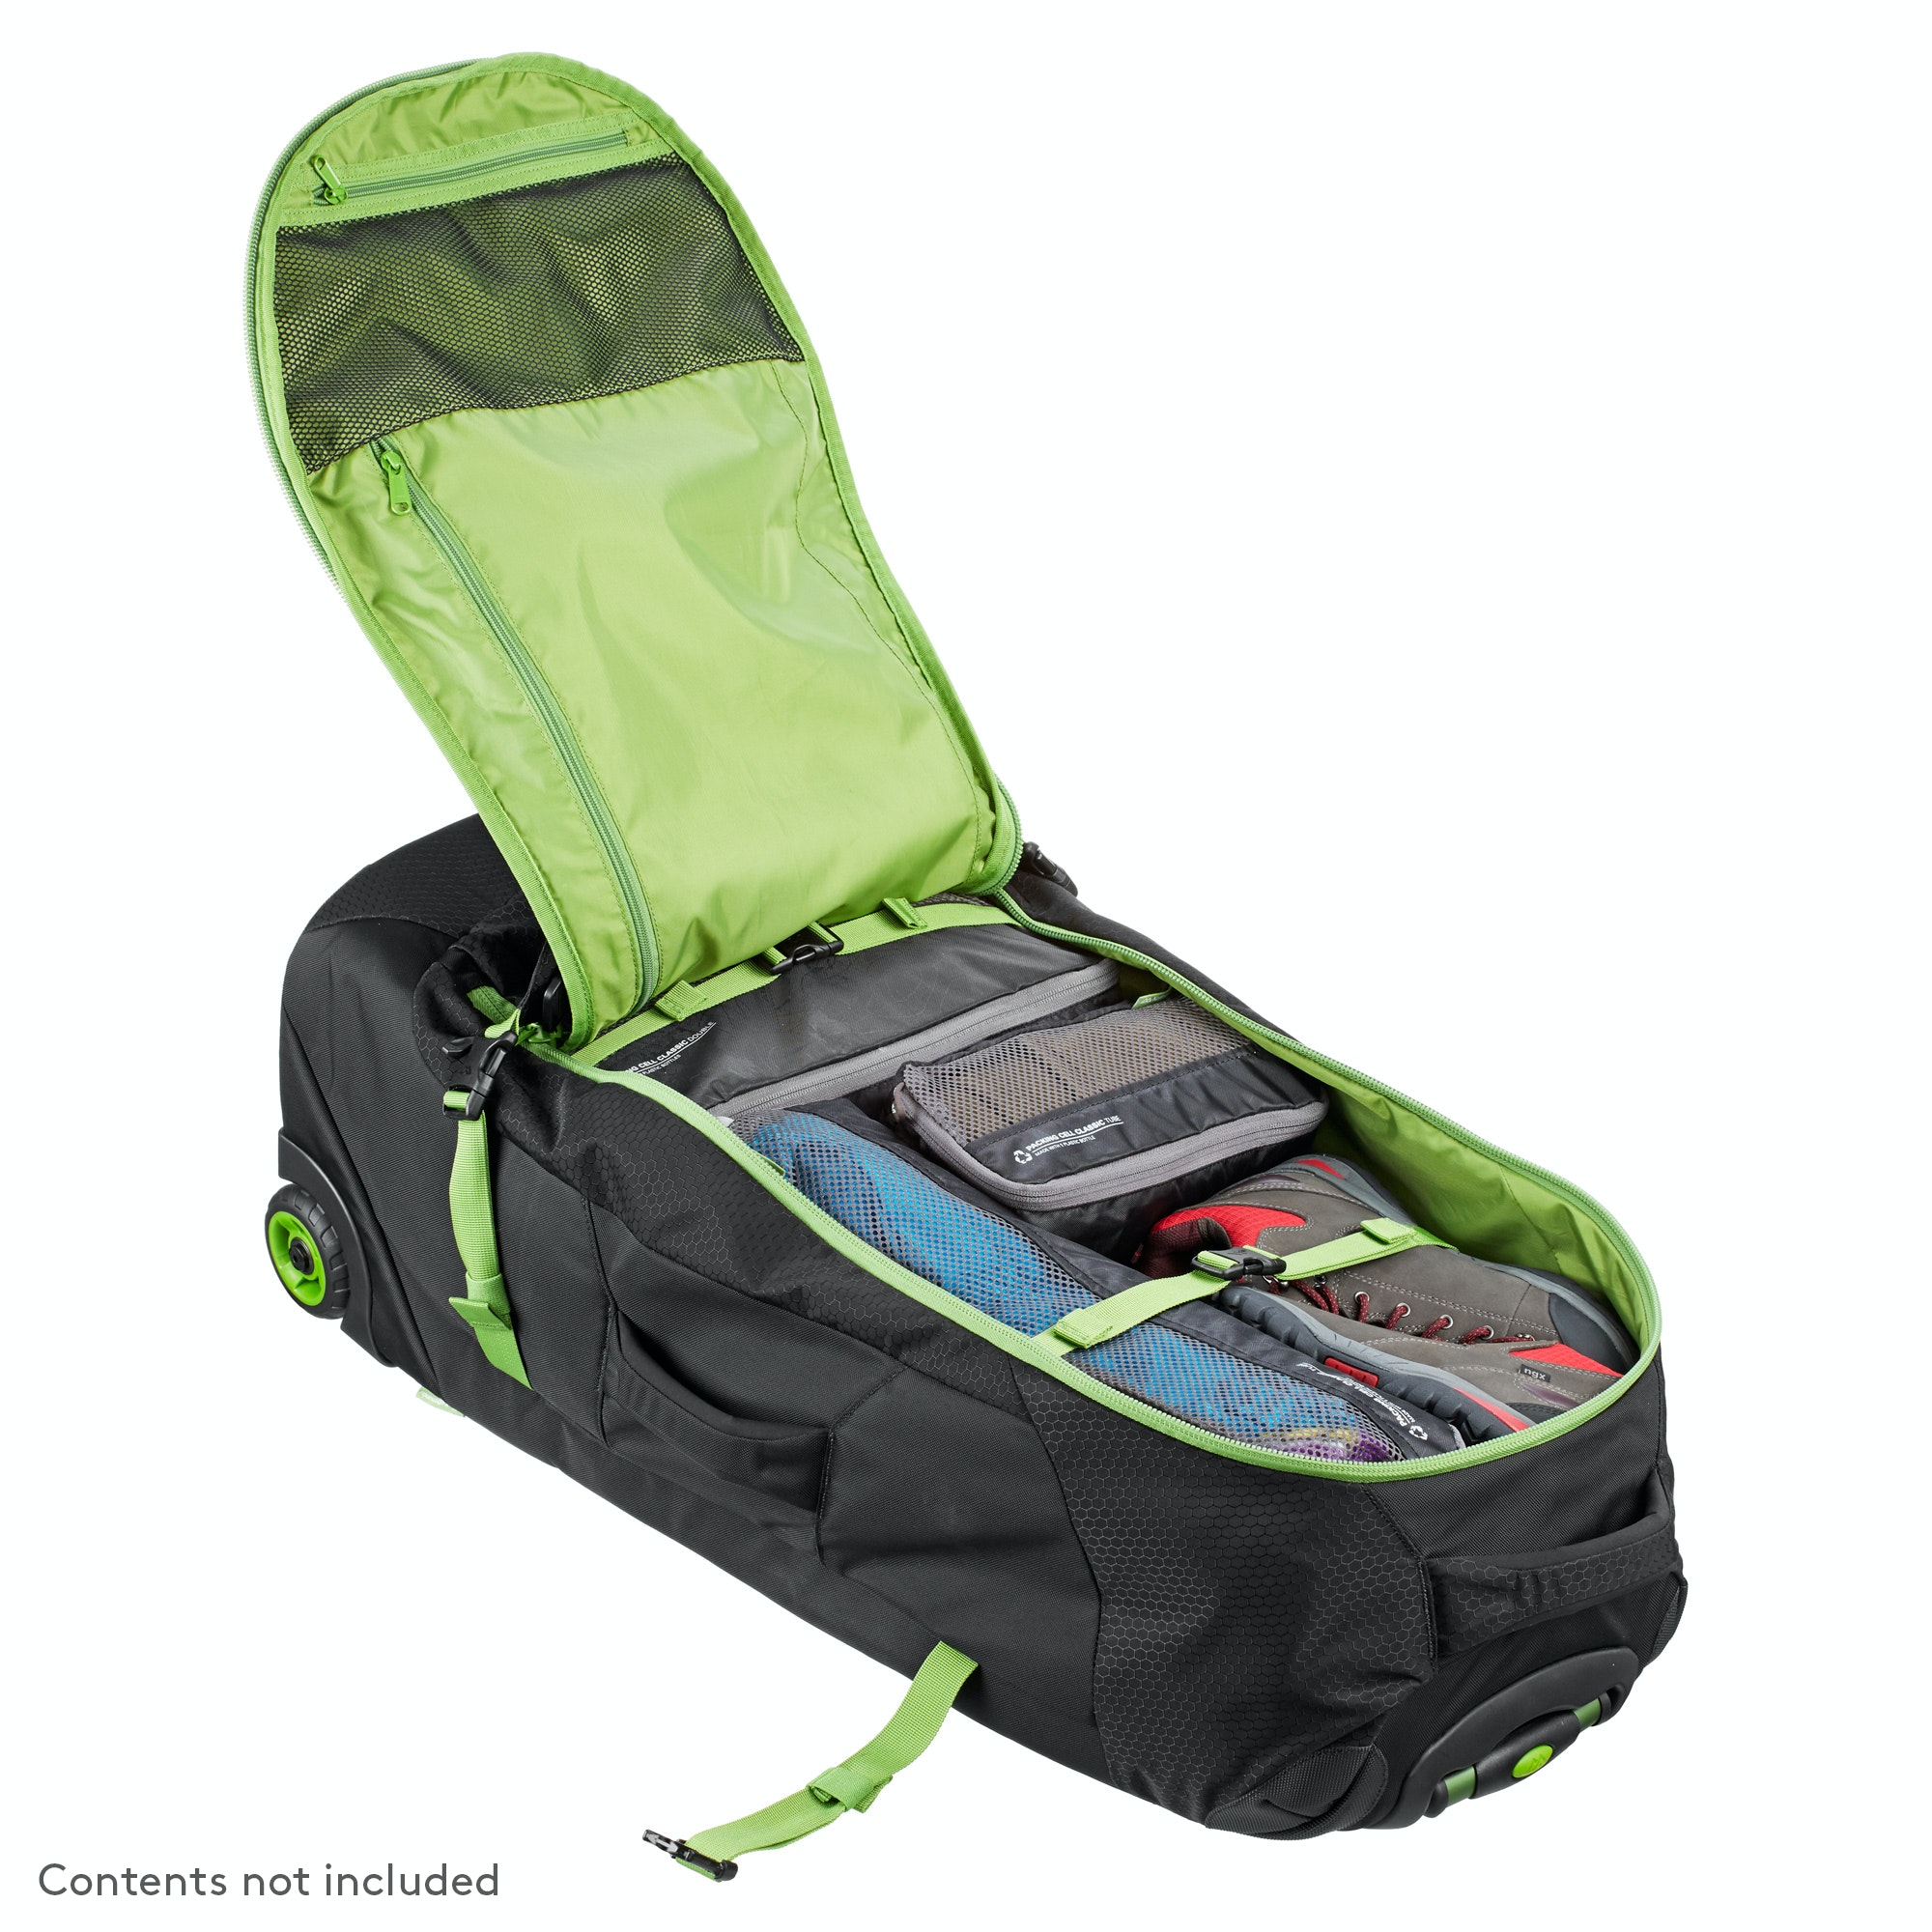 hybrid 70l backpack harness wheeled luggage trolley v3 review